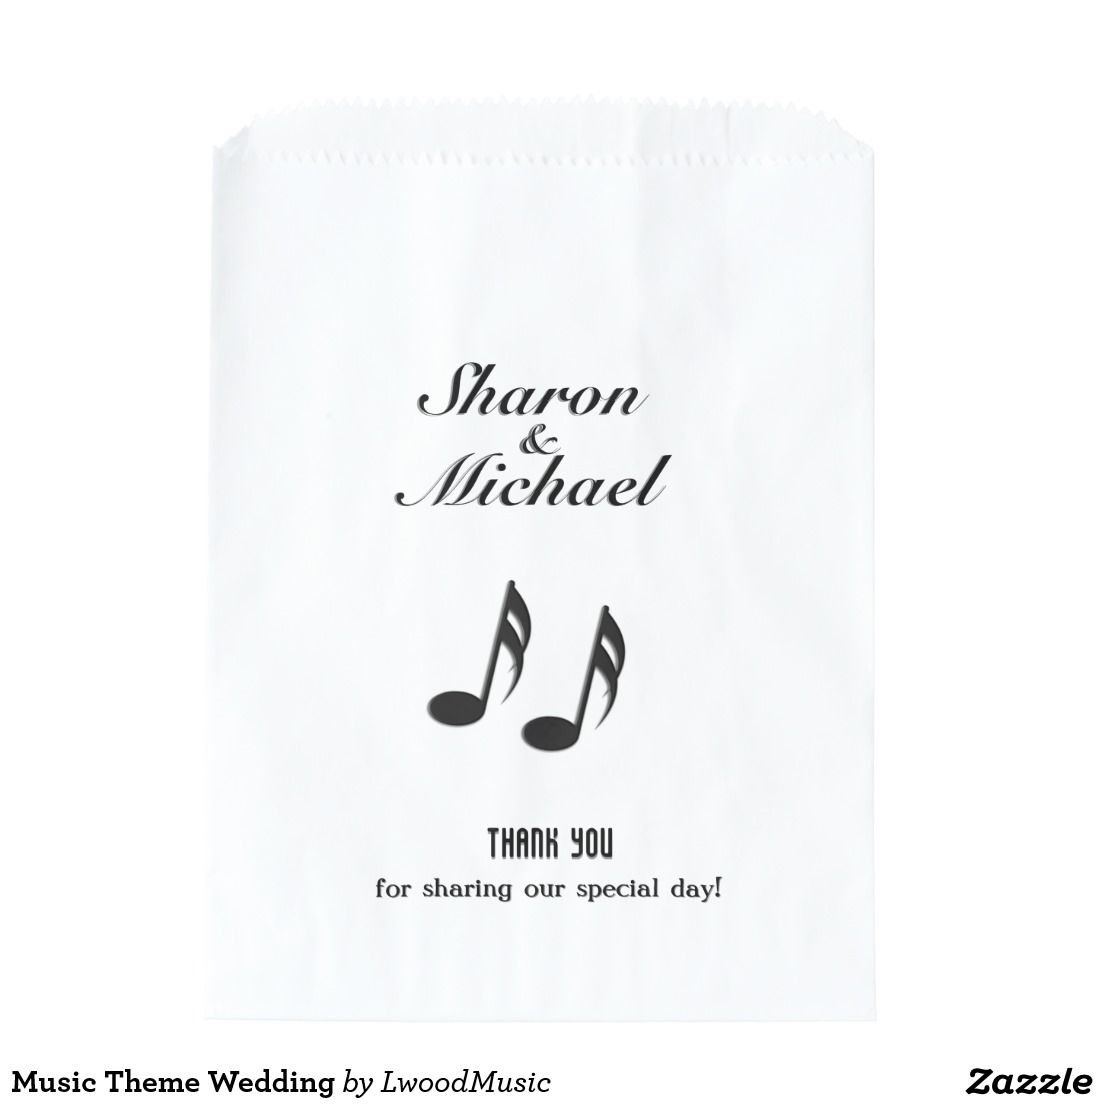 Music Theme Wedding | Music Wedding Invitations | Pinterest | Music ...